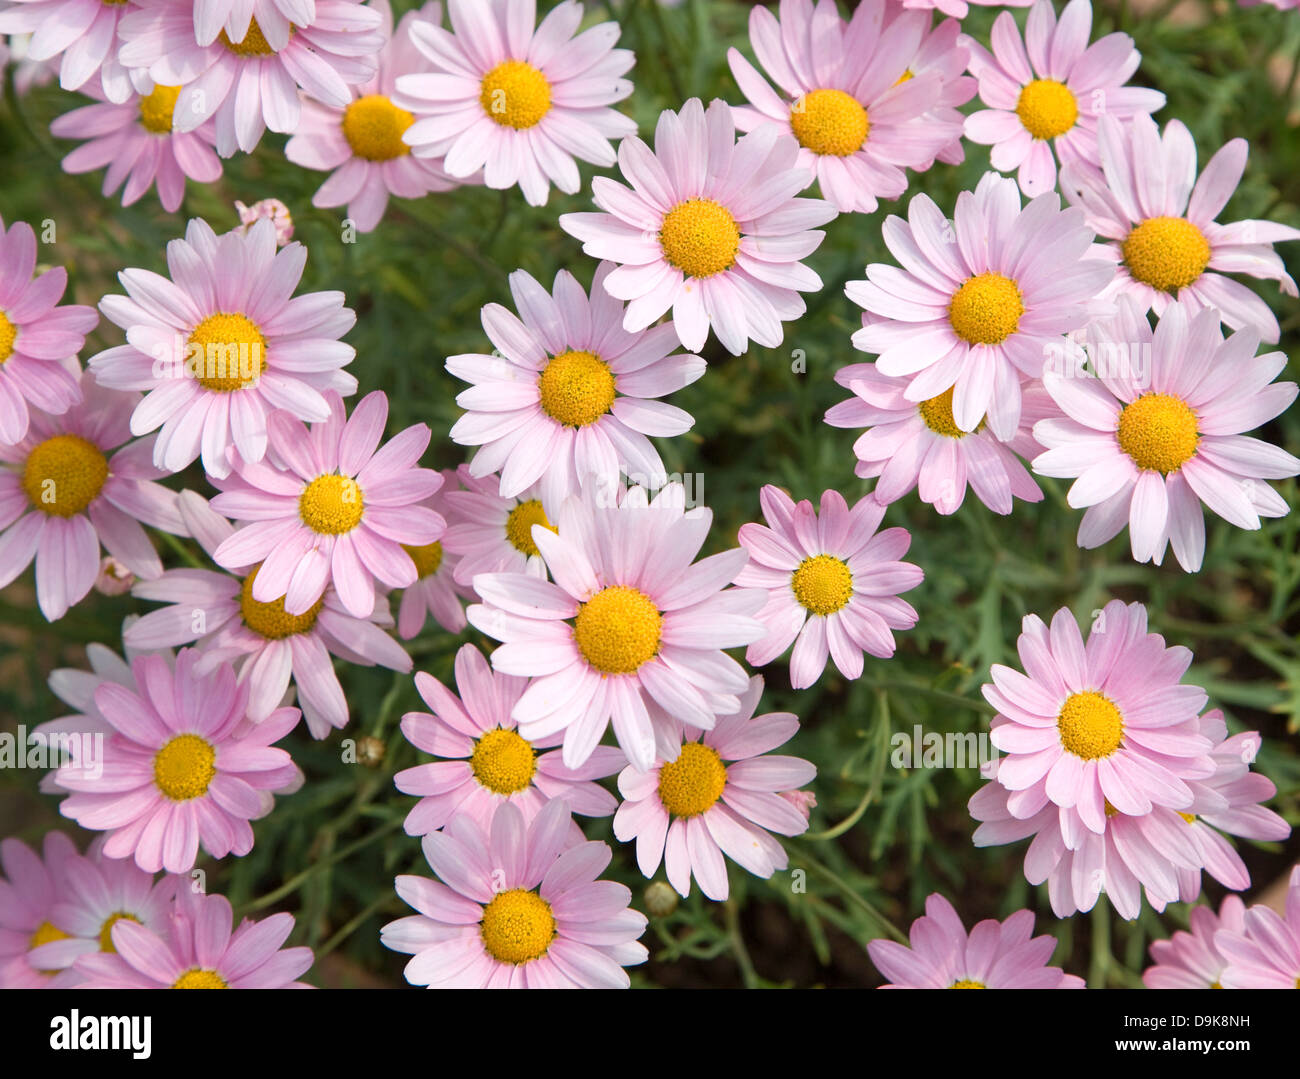 Argyranthemum pink daisy like flowers stock photo 57586973 alamy argyranthemum pink daisy like flowers izmirmasajfo